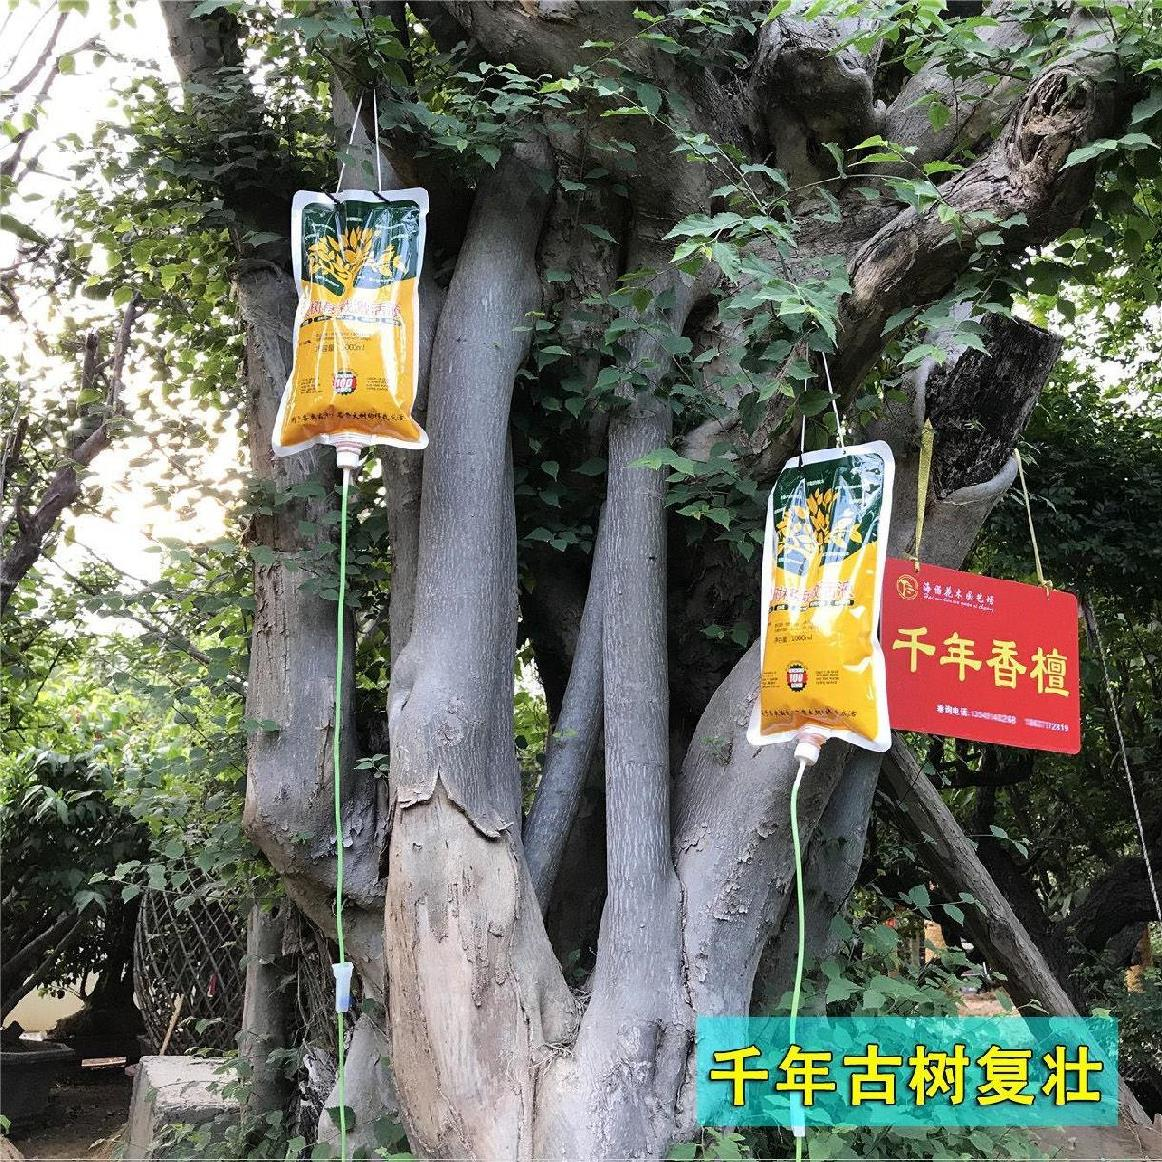 . Big tree nutrient liquid bag hanging liquid tree needle hanging liquid promotes root sprouting of large-scale landscape diseased trees in fertilizer old tree fruit forest